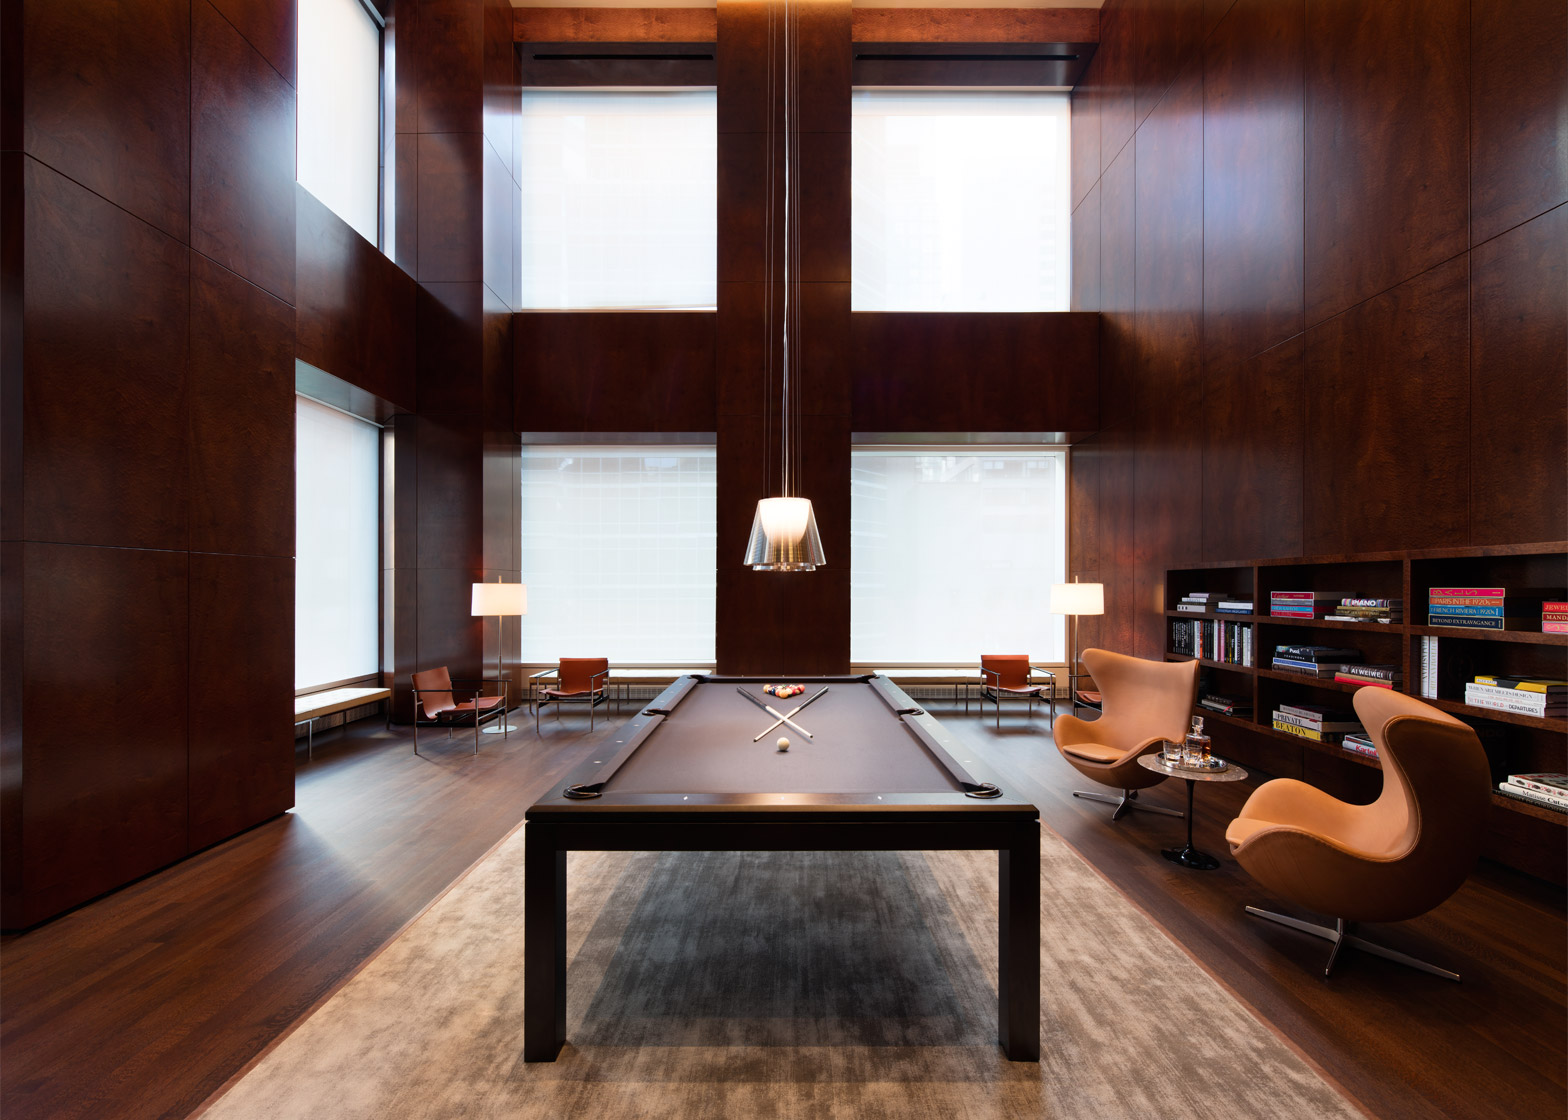 Interior of 432 Park Avenue by Rafael Viñoly architects